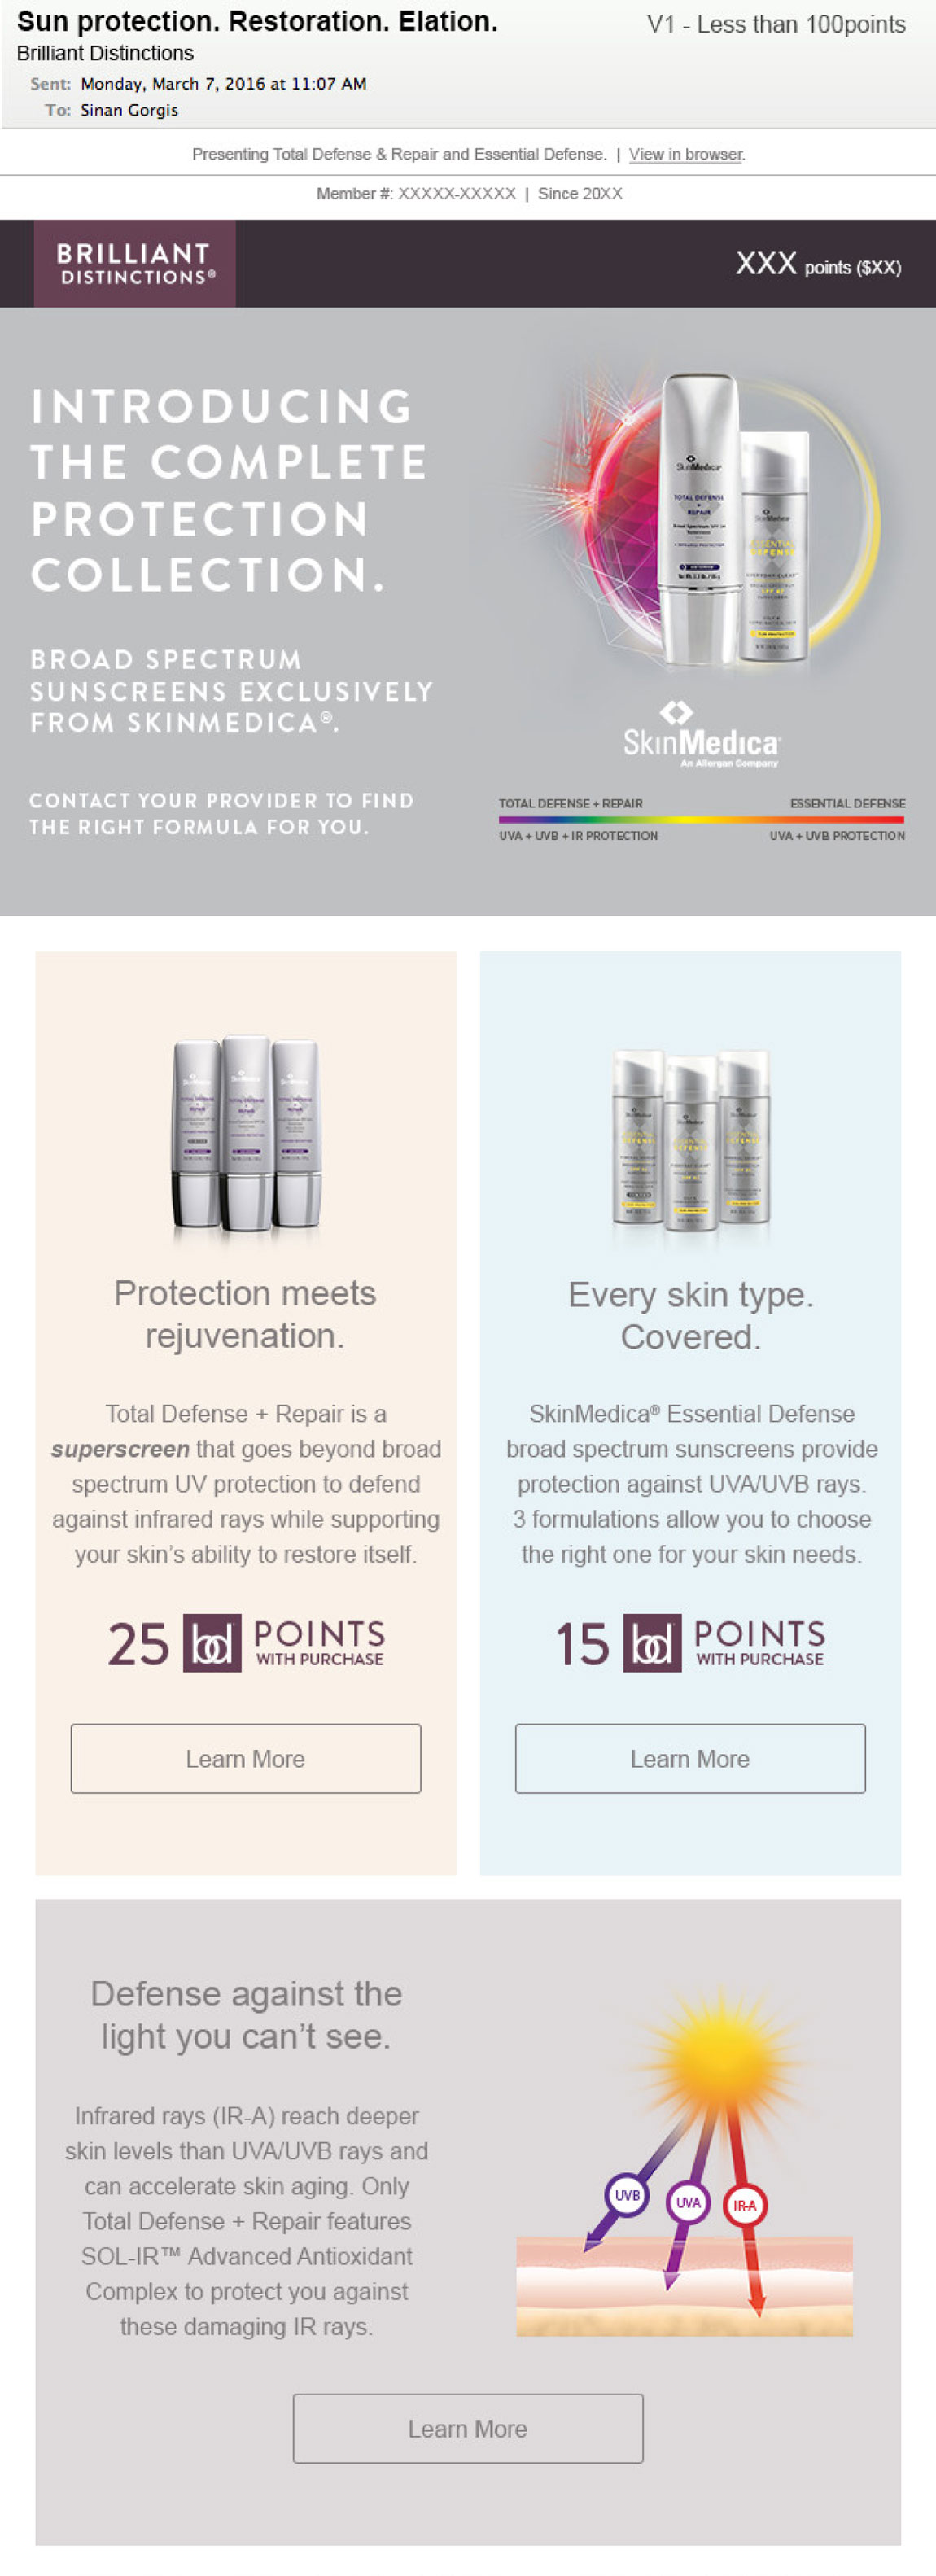 SUN60626_SkinMedica-Introducing-the-complete-protection-collection-2-1.jpg